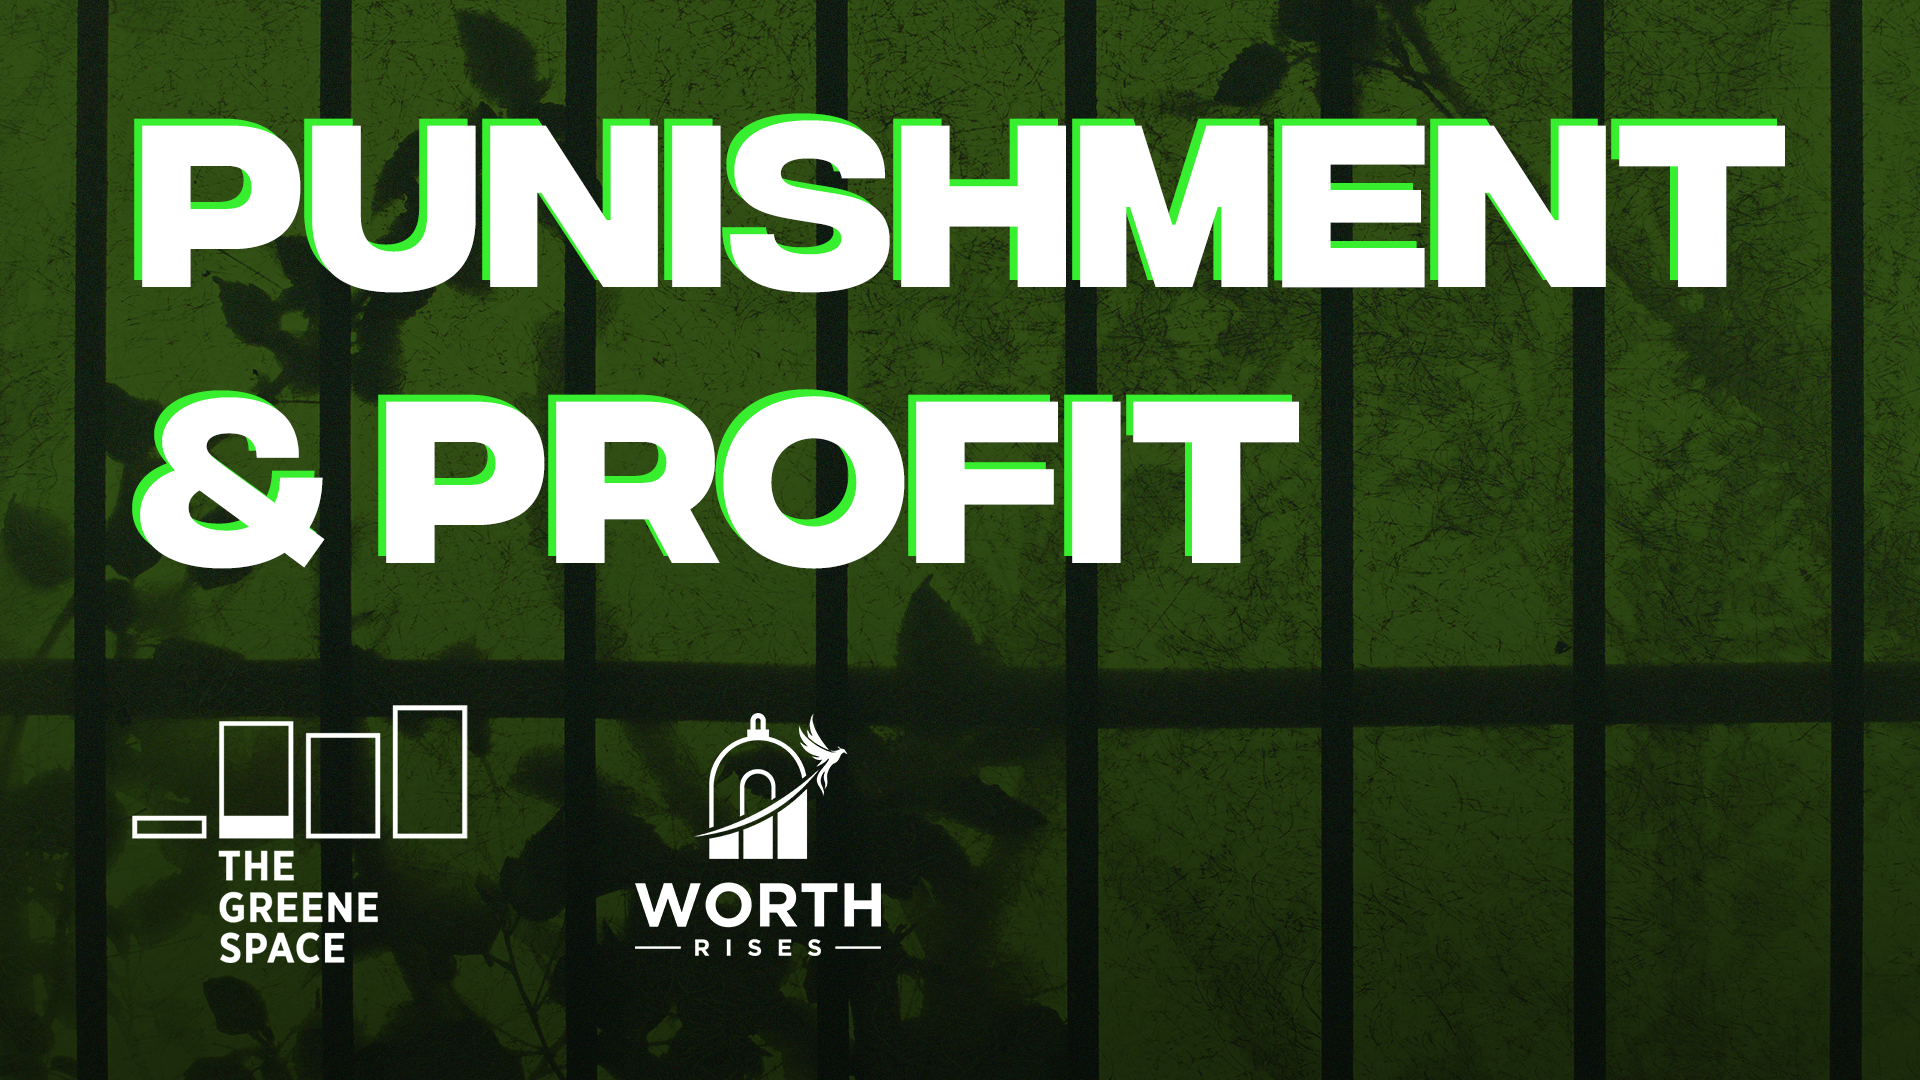 Punishment & Profit